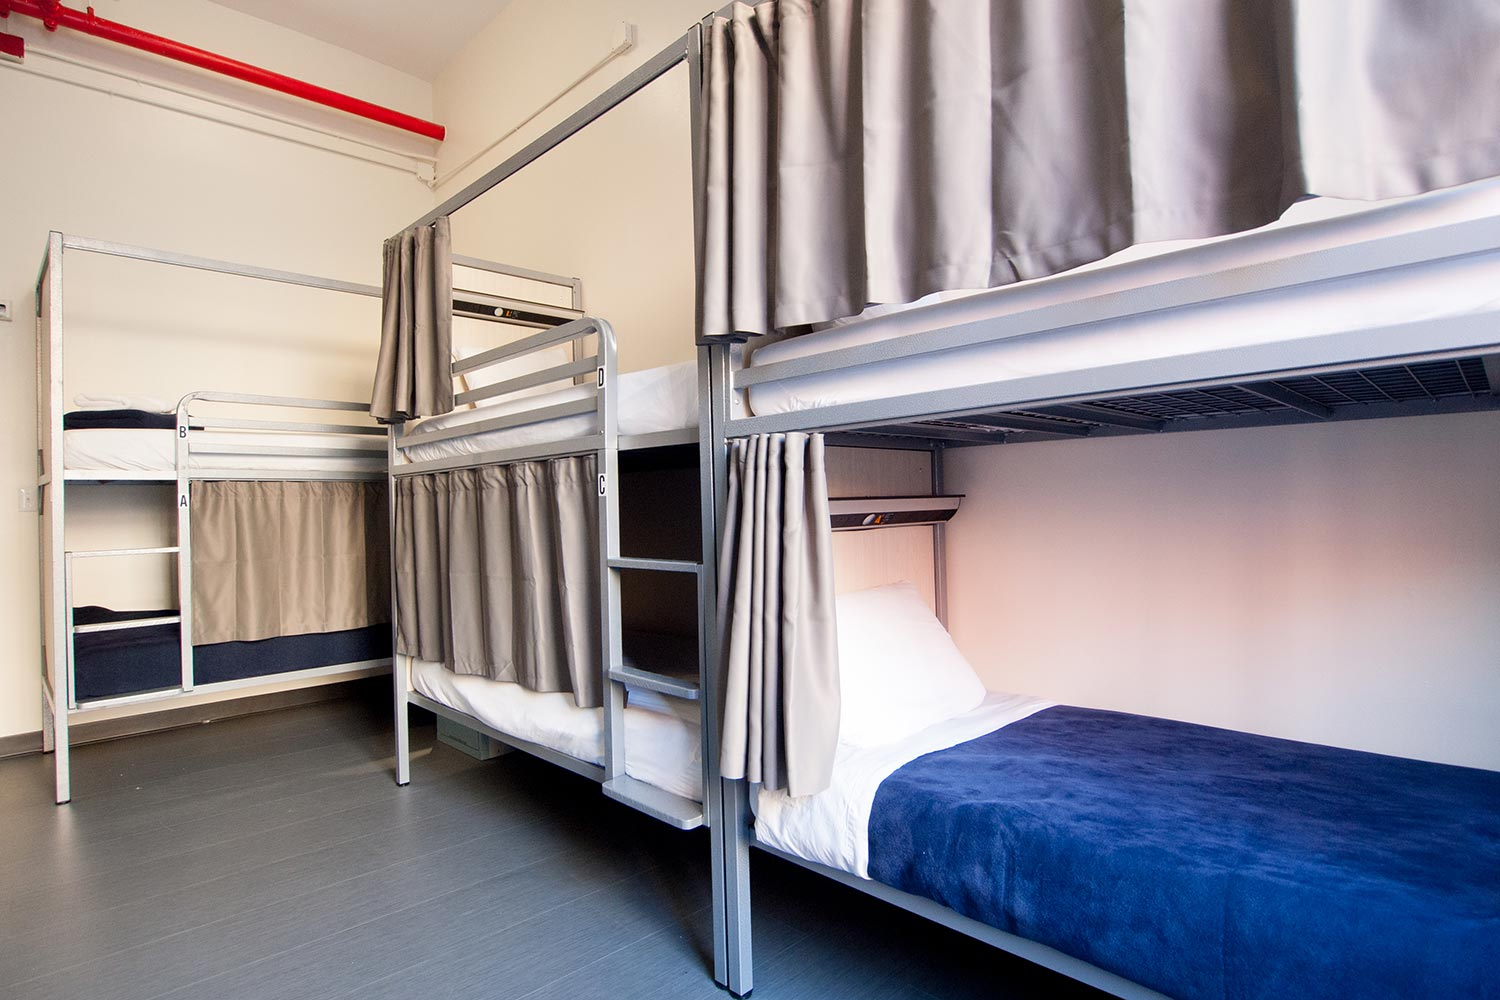 Room view with six bunk beds